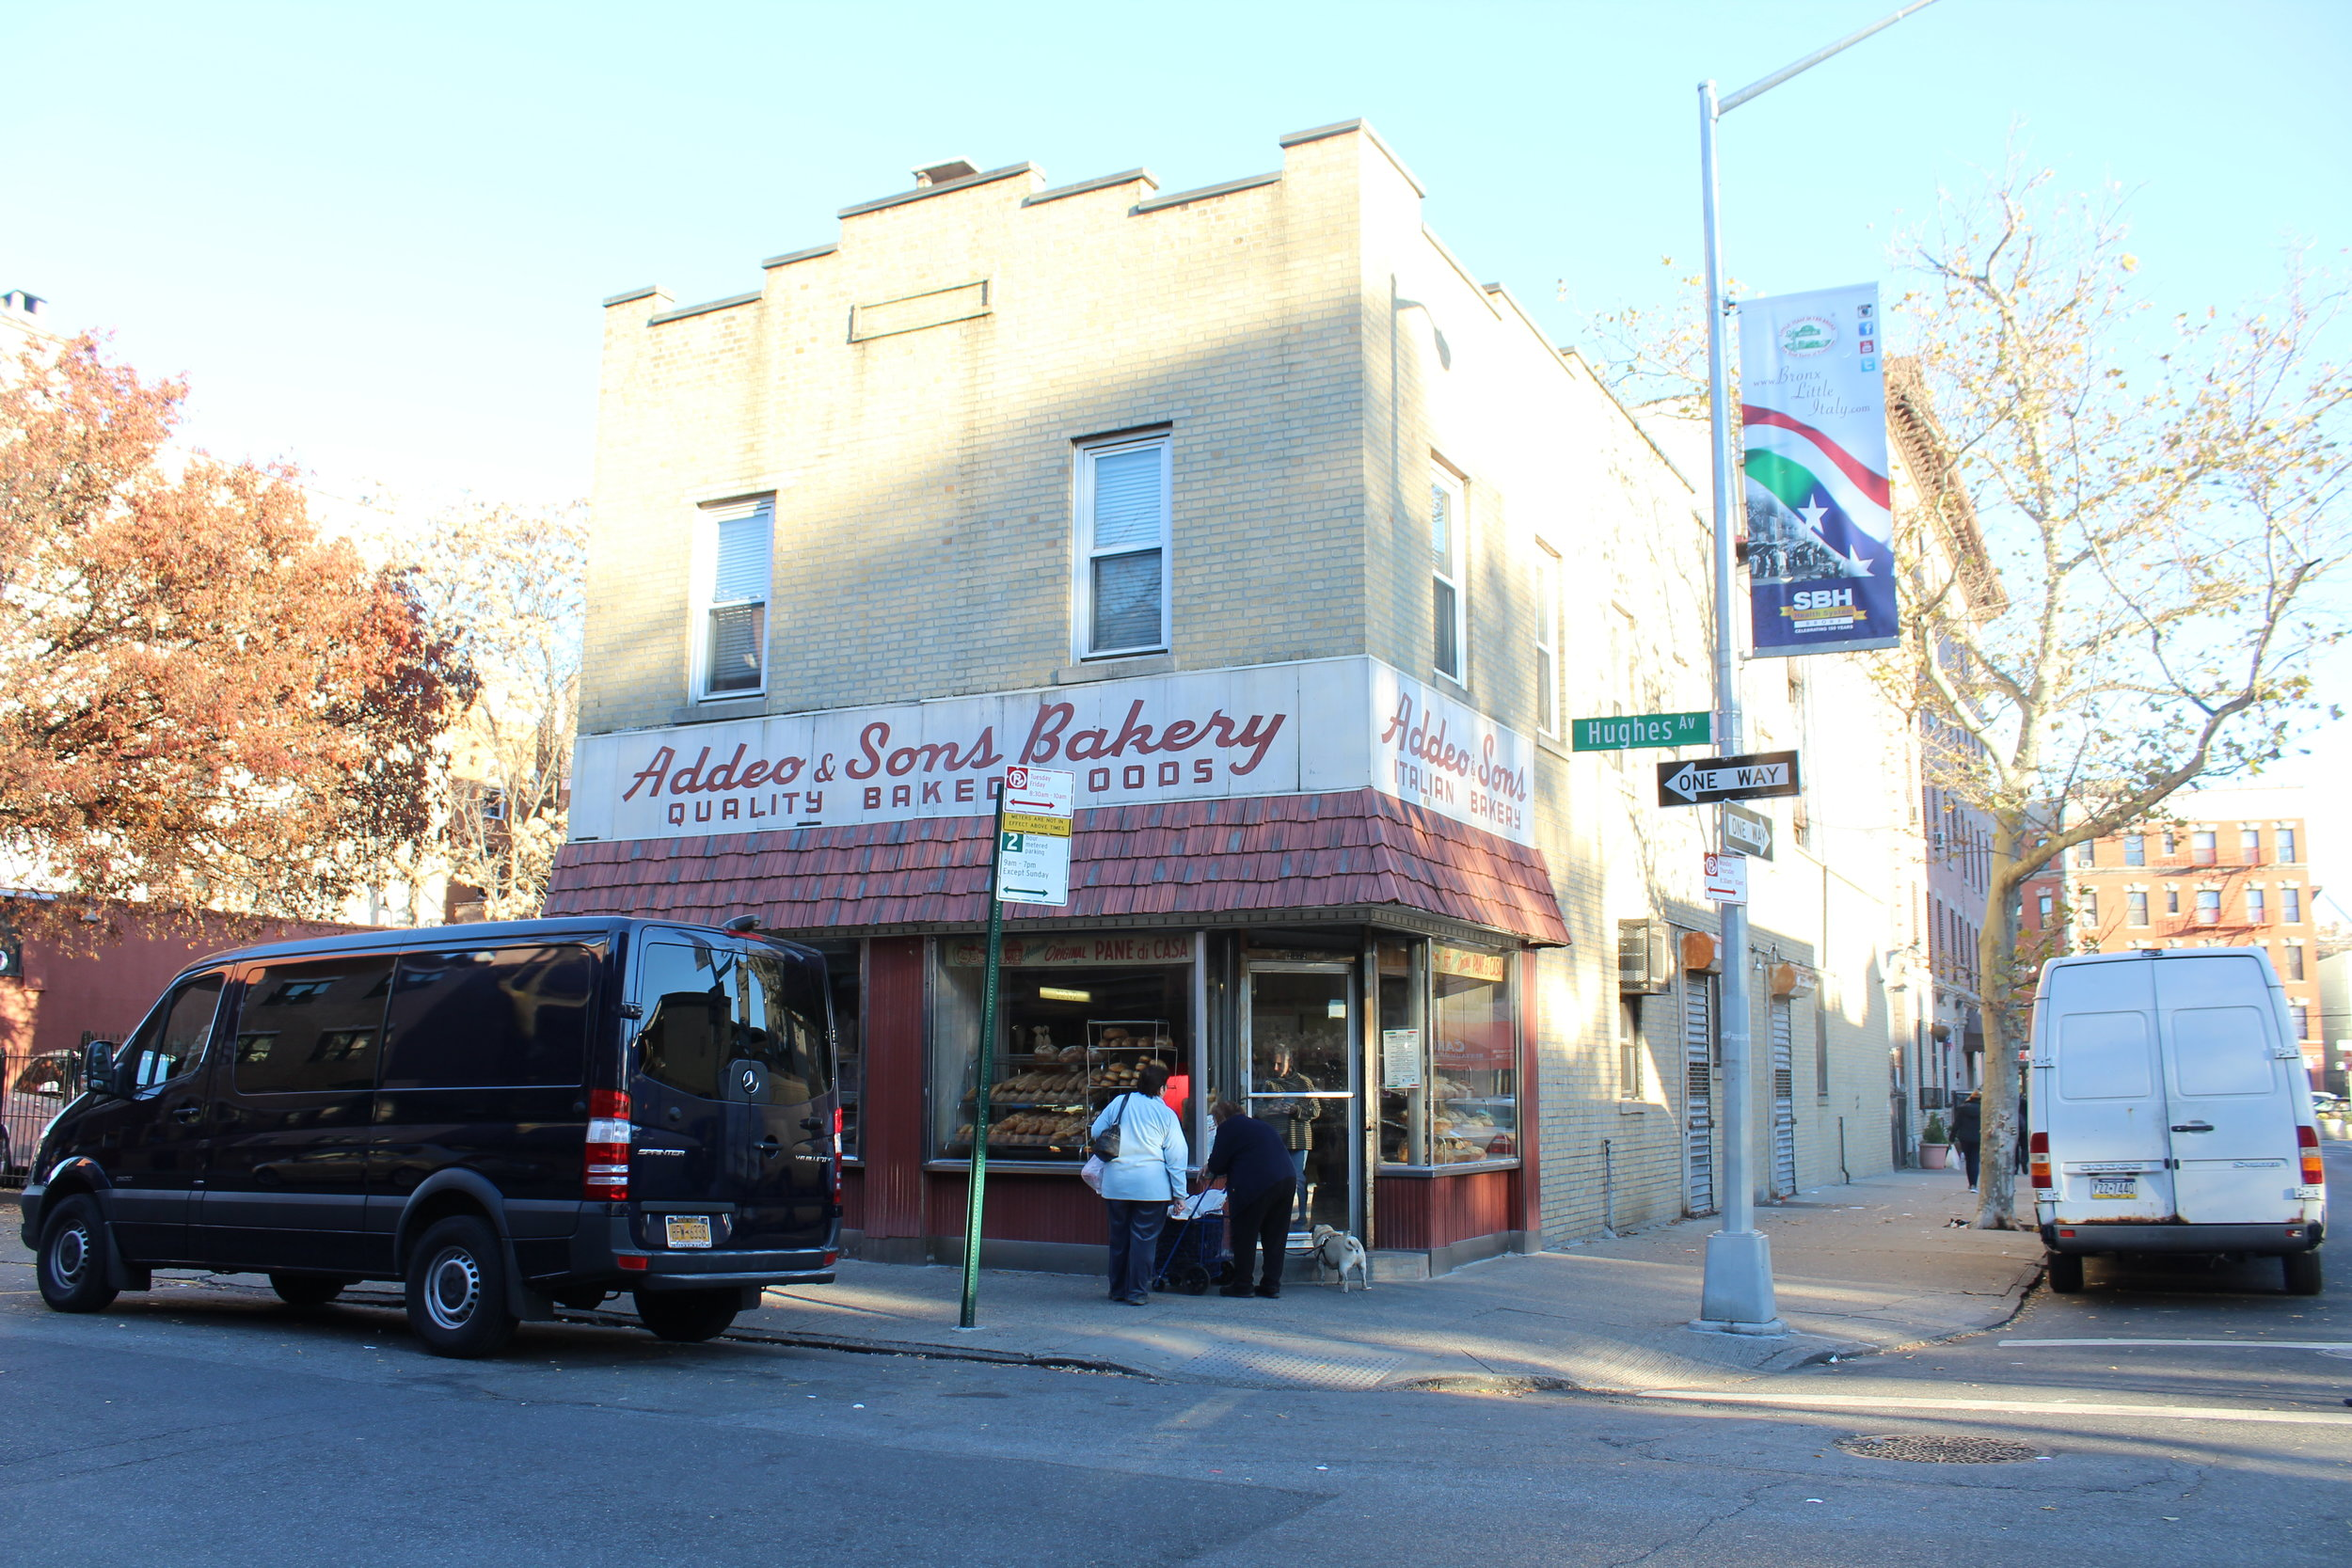 The Addeo bakery on Hughes Avenue is where the bread is baked.